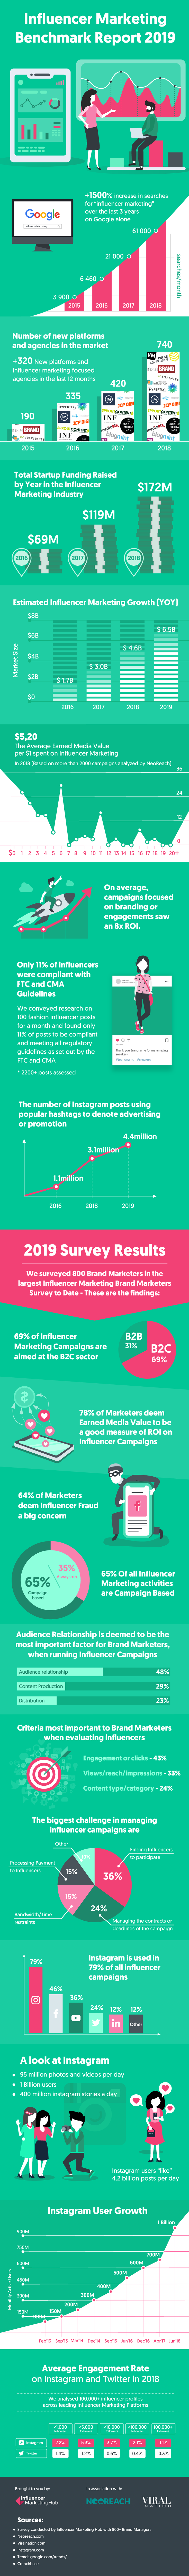 The State of Influencer Marketing 2019 : Benchmark Report #infographic